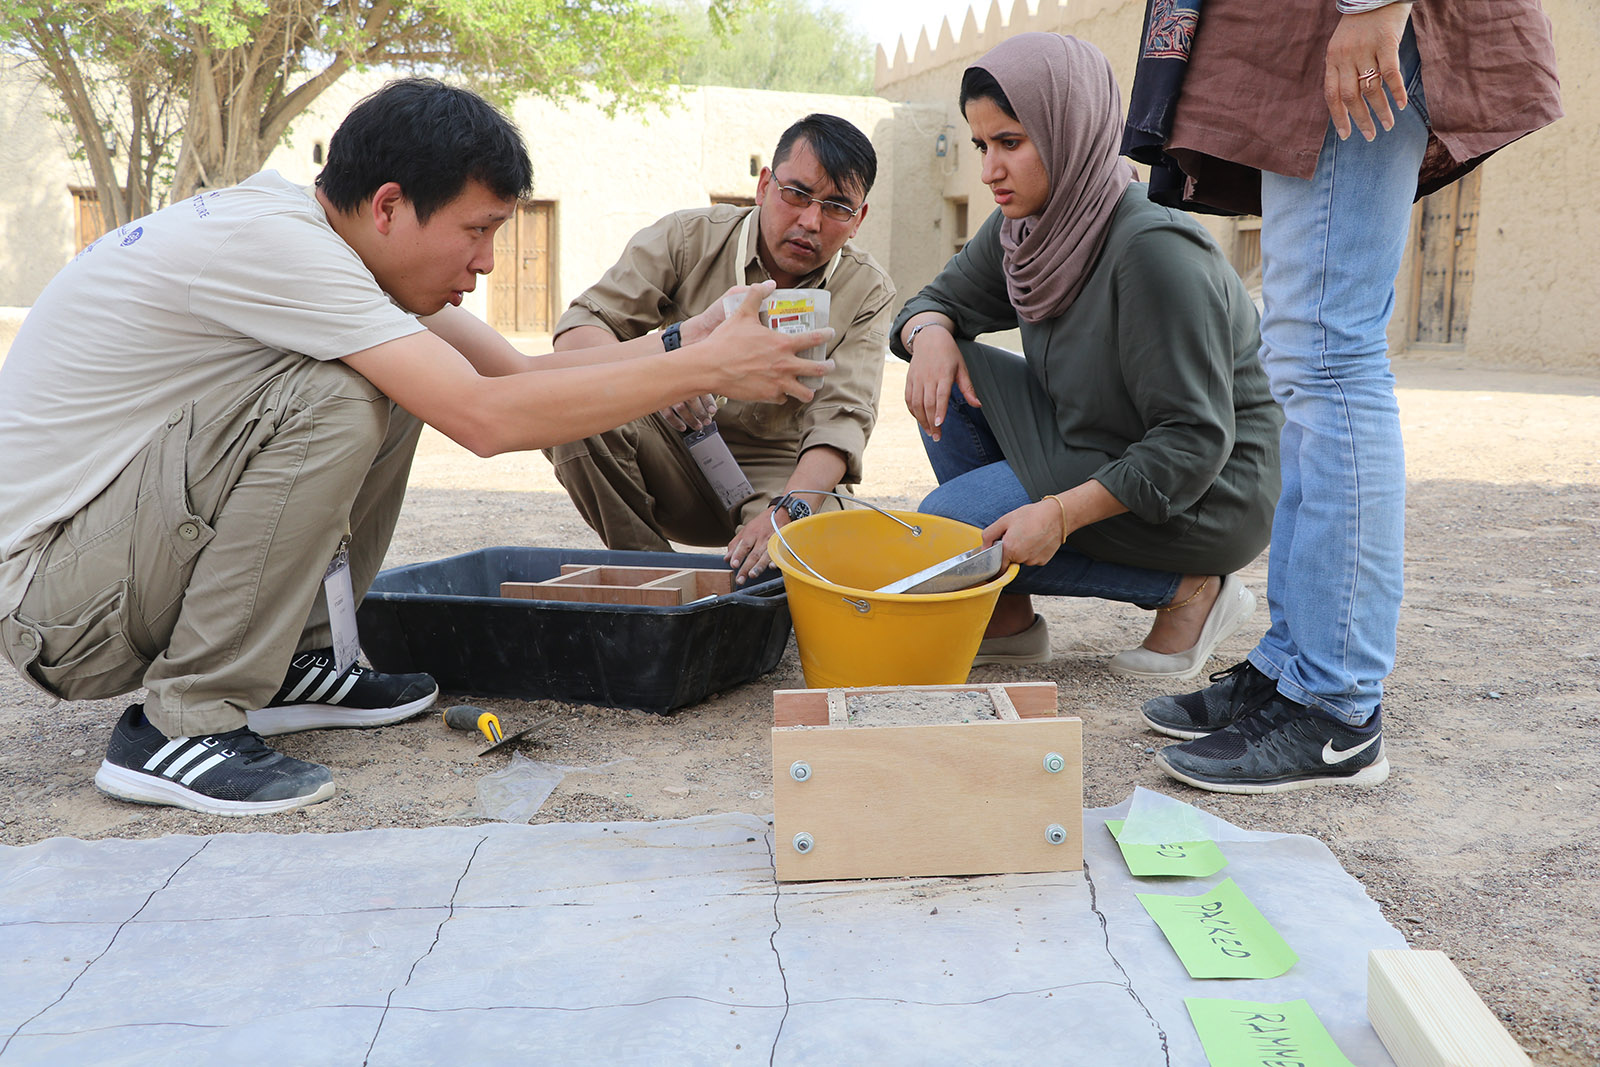 In a dirt courtyard, a man holds a container in which he, another man, and Eithar, a young woman wearing a mauve headscarf, a green smock, and blue jeans, look at a container holding a substance for an exercise.